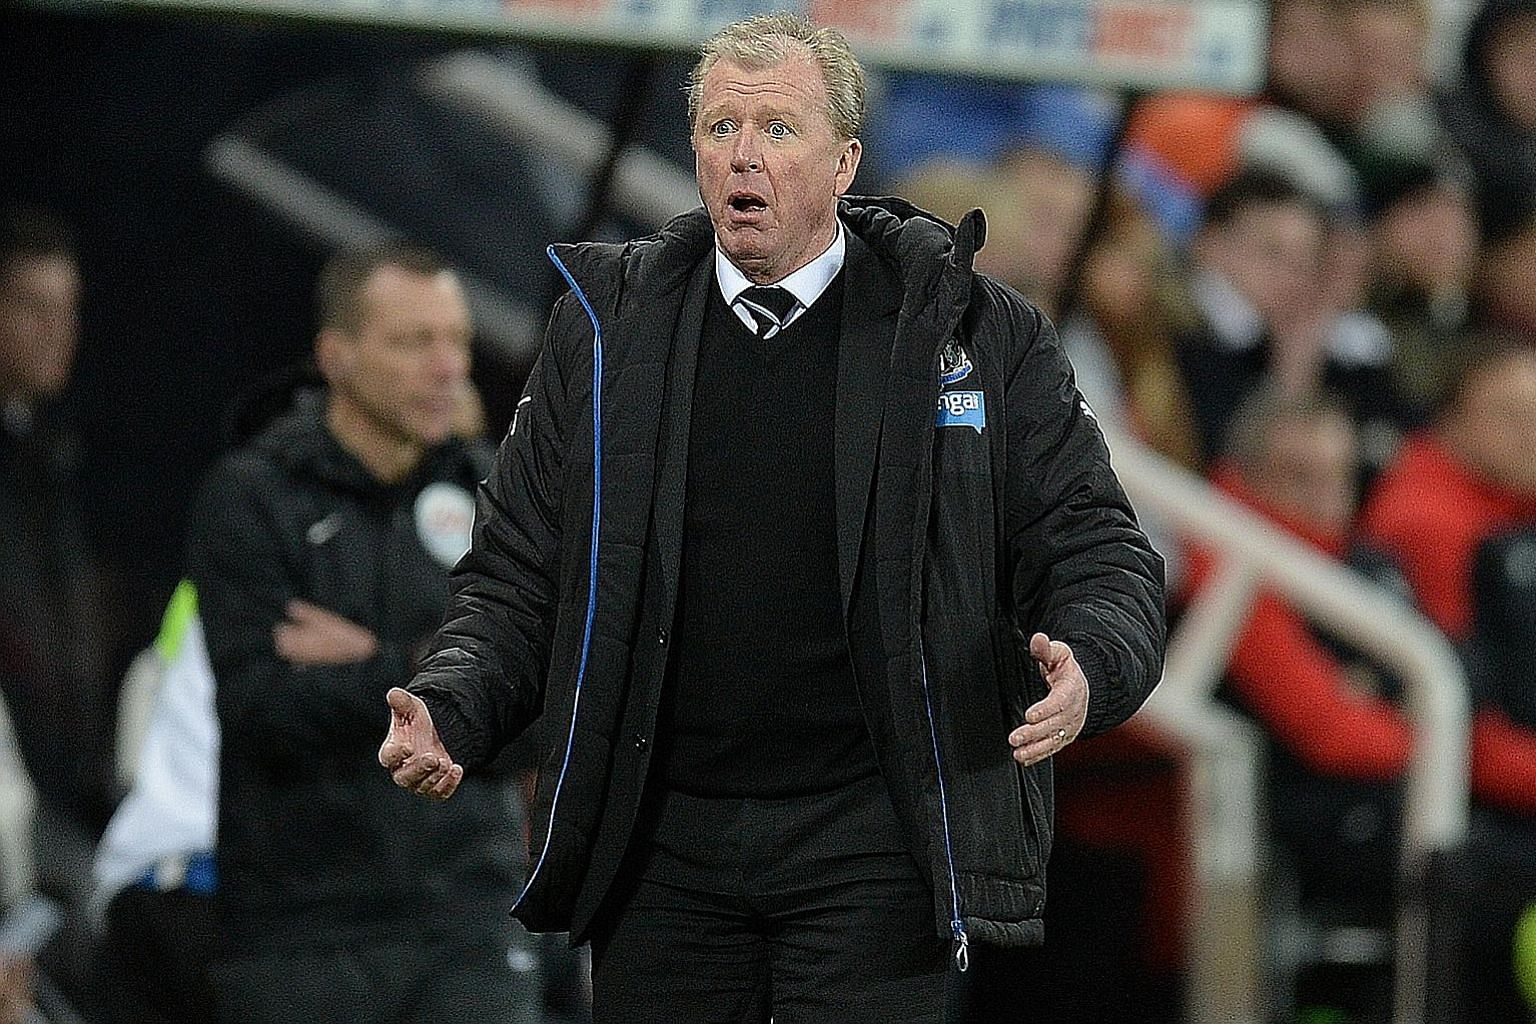 Steve McClaren won only six of his 28 Premier League games in charge of Newcastle, leaving the club in 19th place and one point adrift of safety. He has been replaced by former Liverpool coach Rafa Benitez.